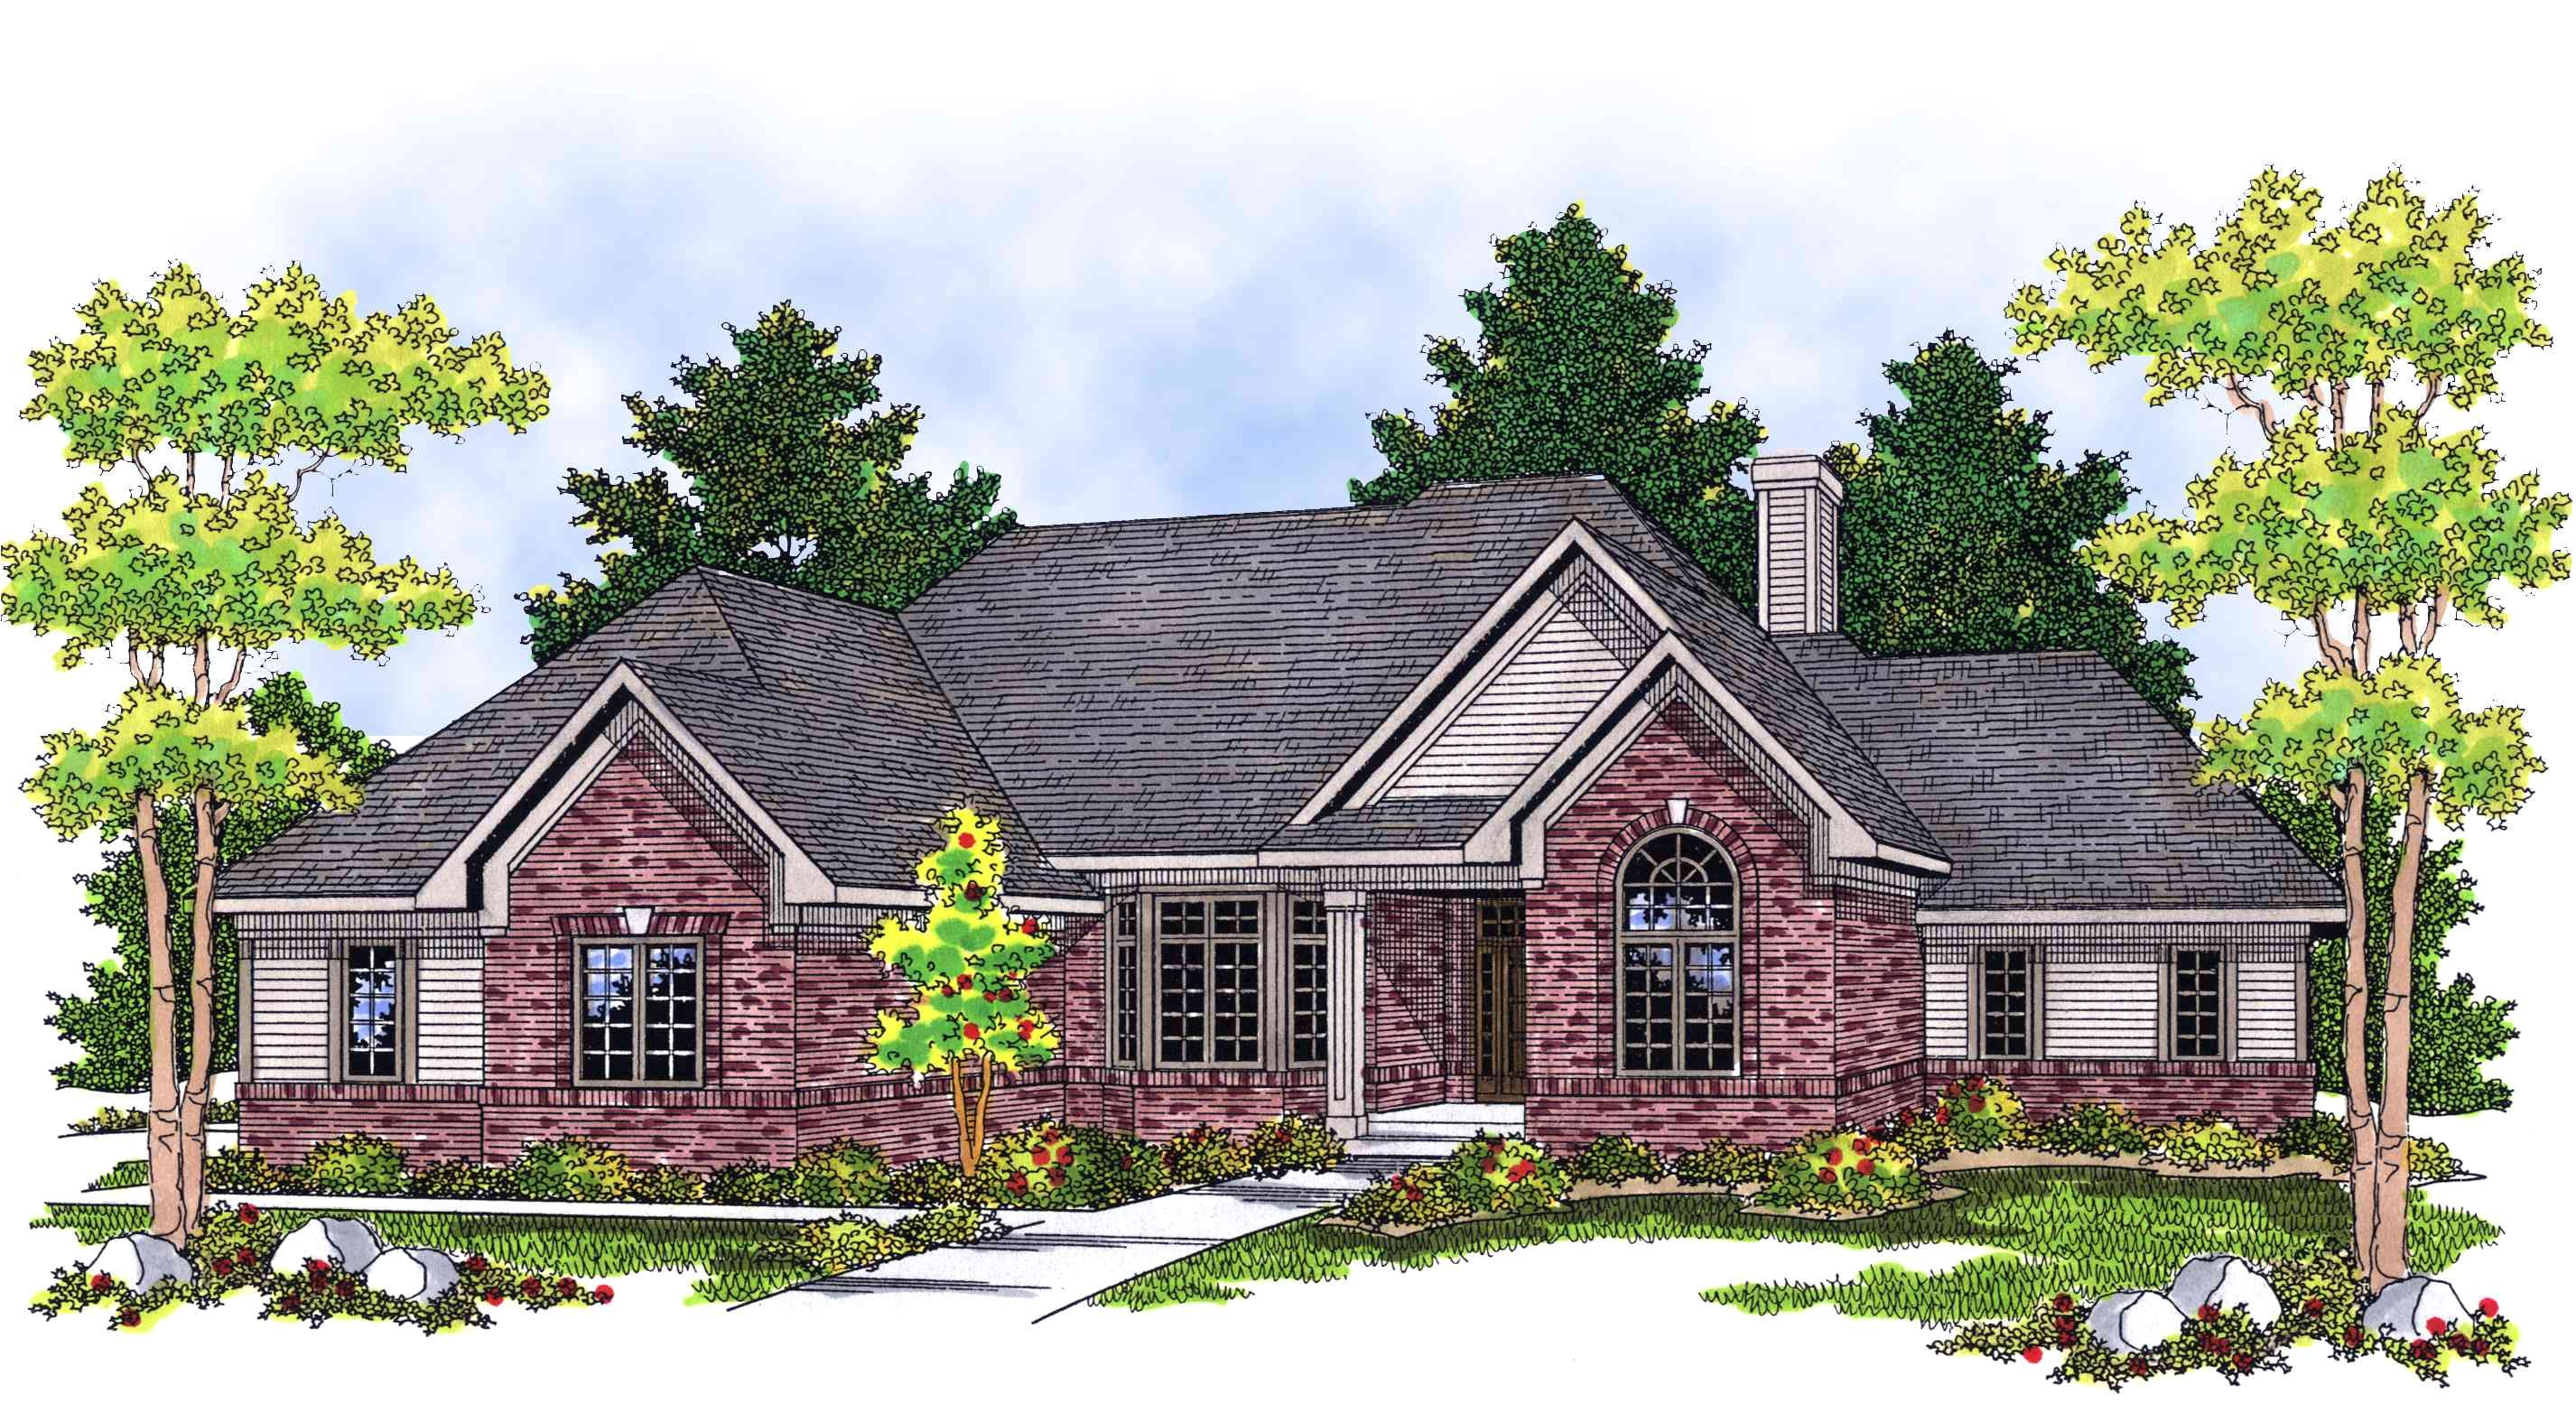 Affordable Ranch Home Plans Comfortable and Affordable Ranch Home Plan 8973ah